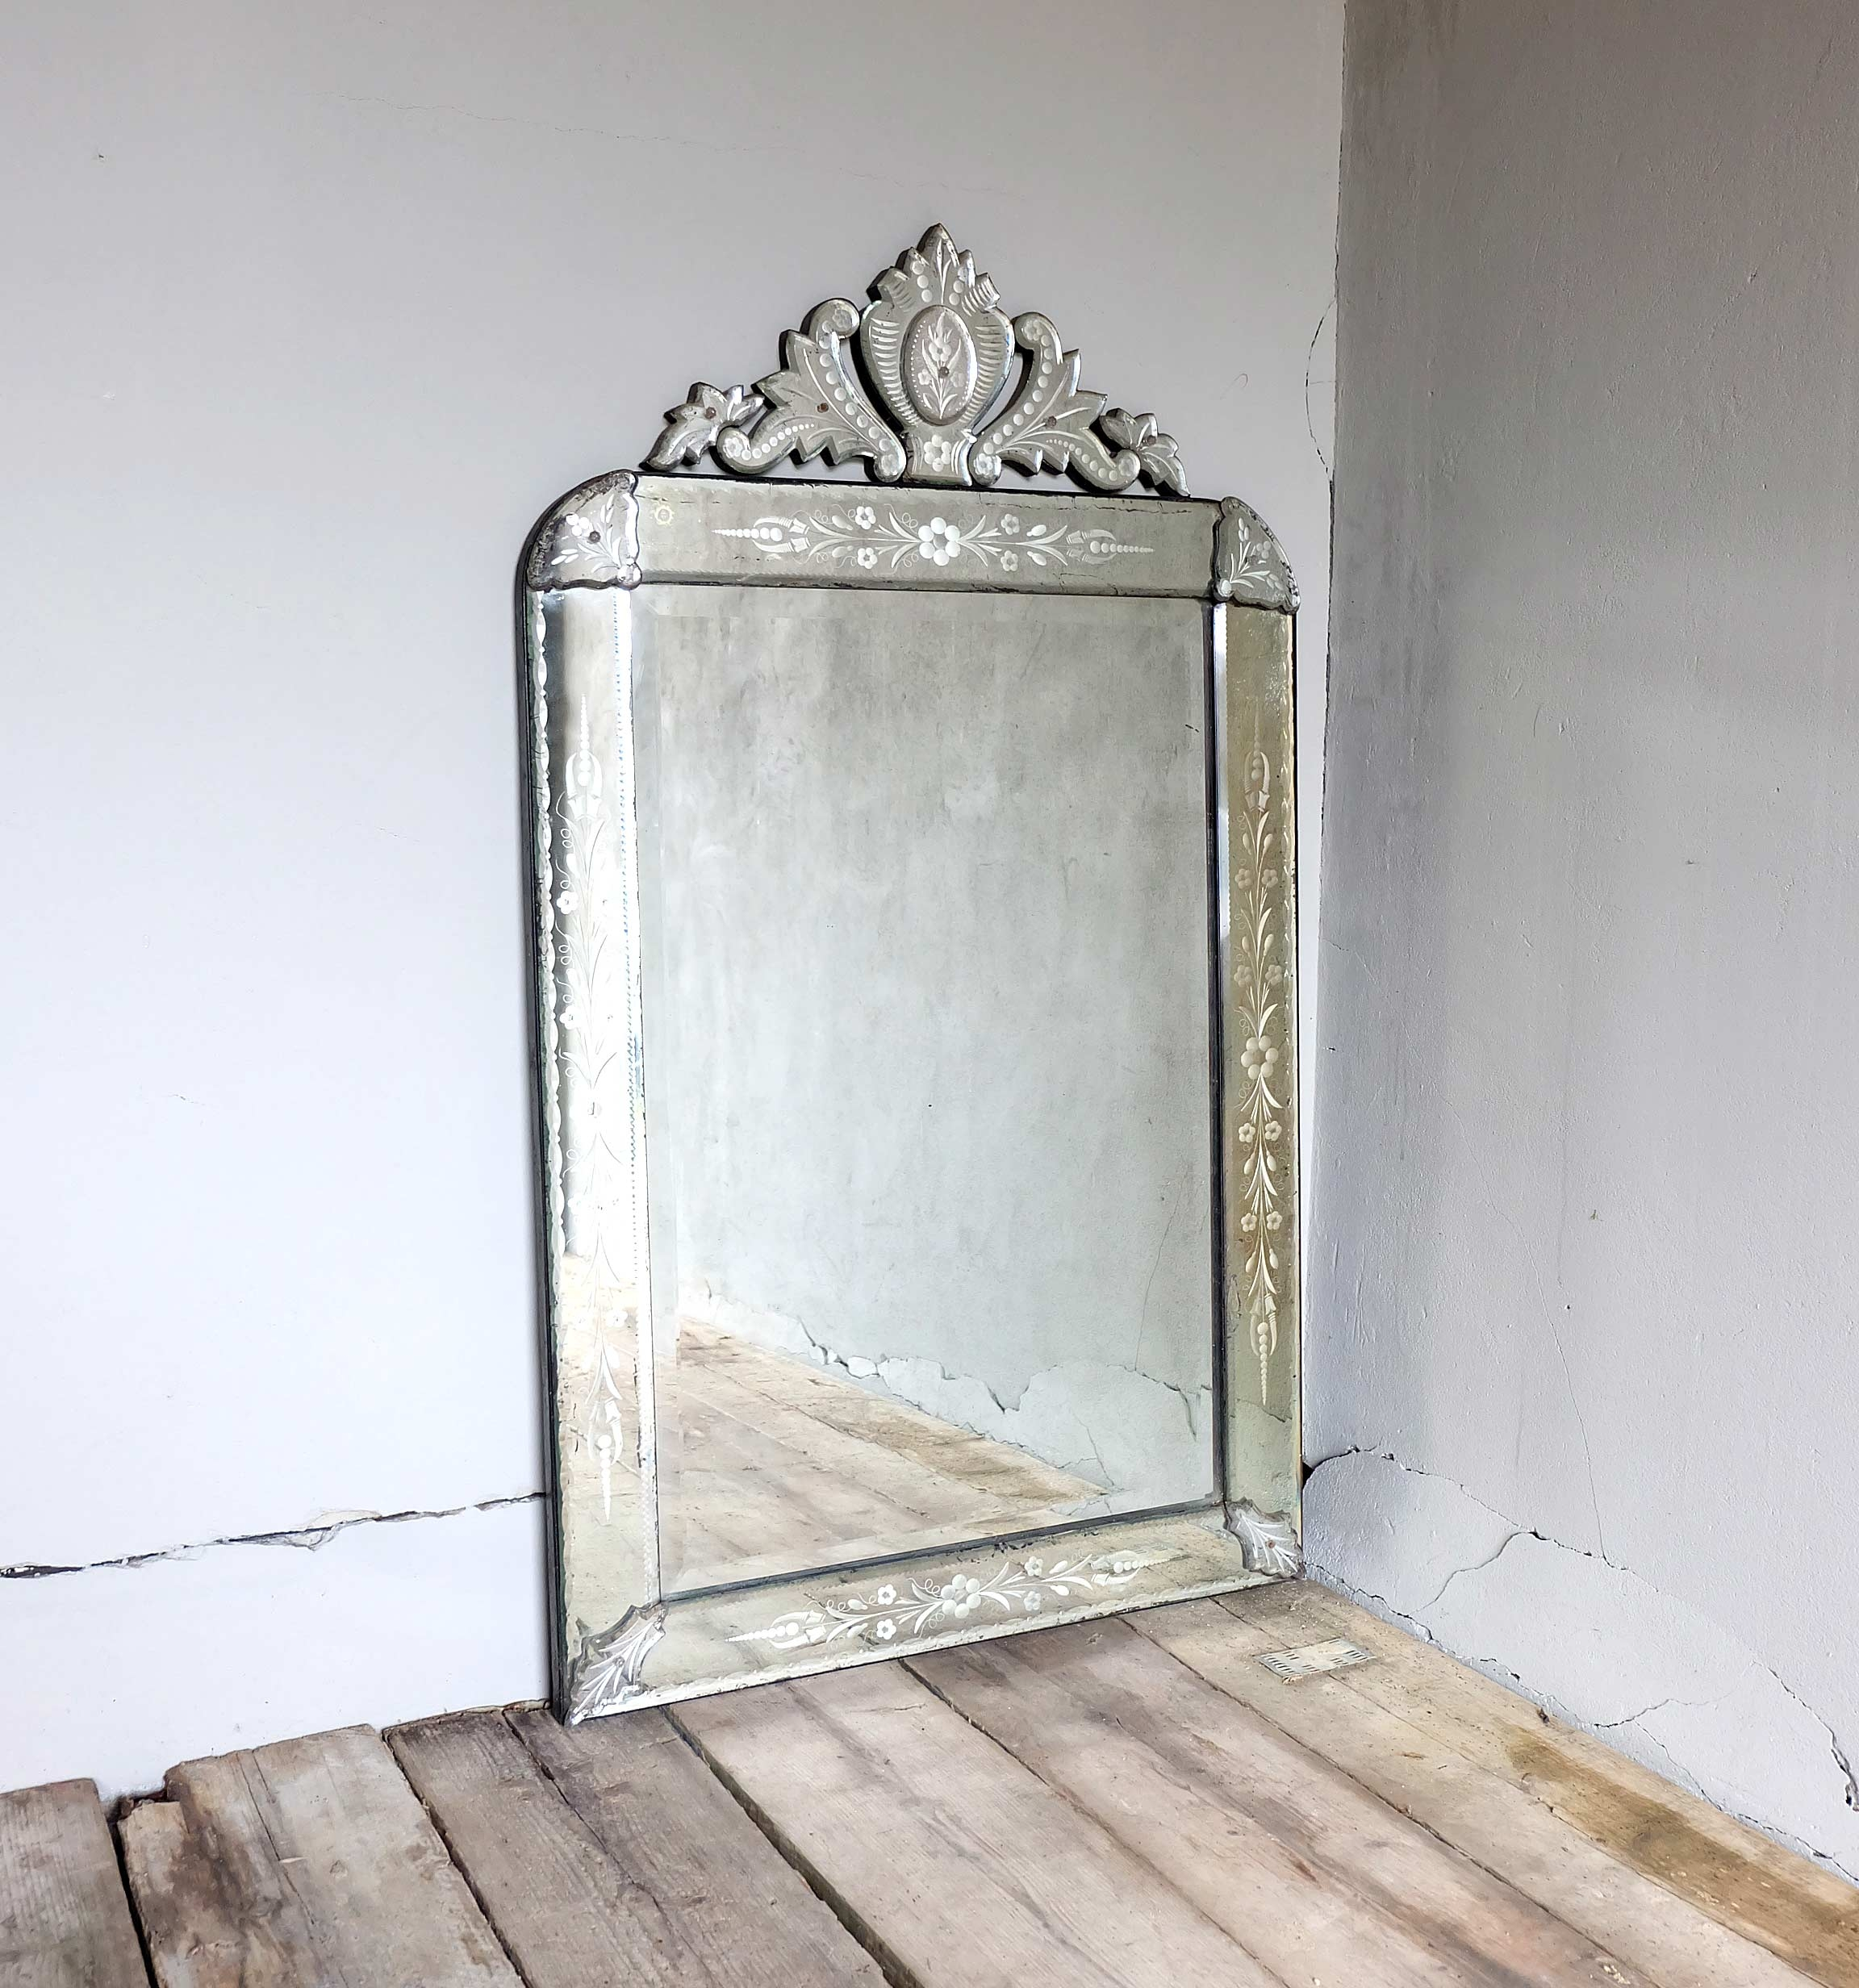 Antique Venetian Mirror Puckhaber Decorative Antiques With Venetian Antique Mirror (Image 4 of 15)